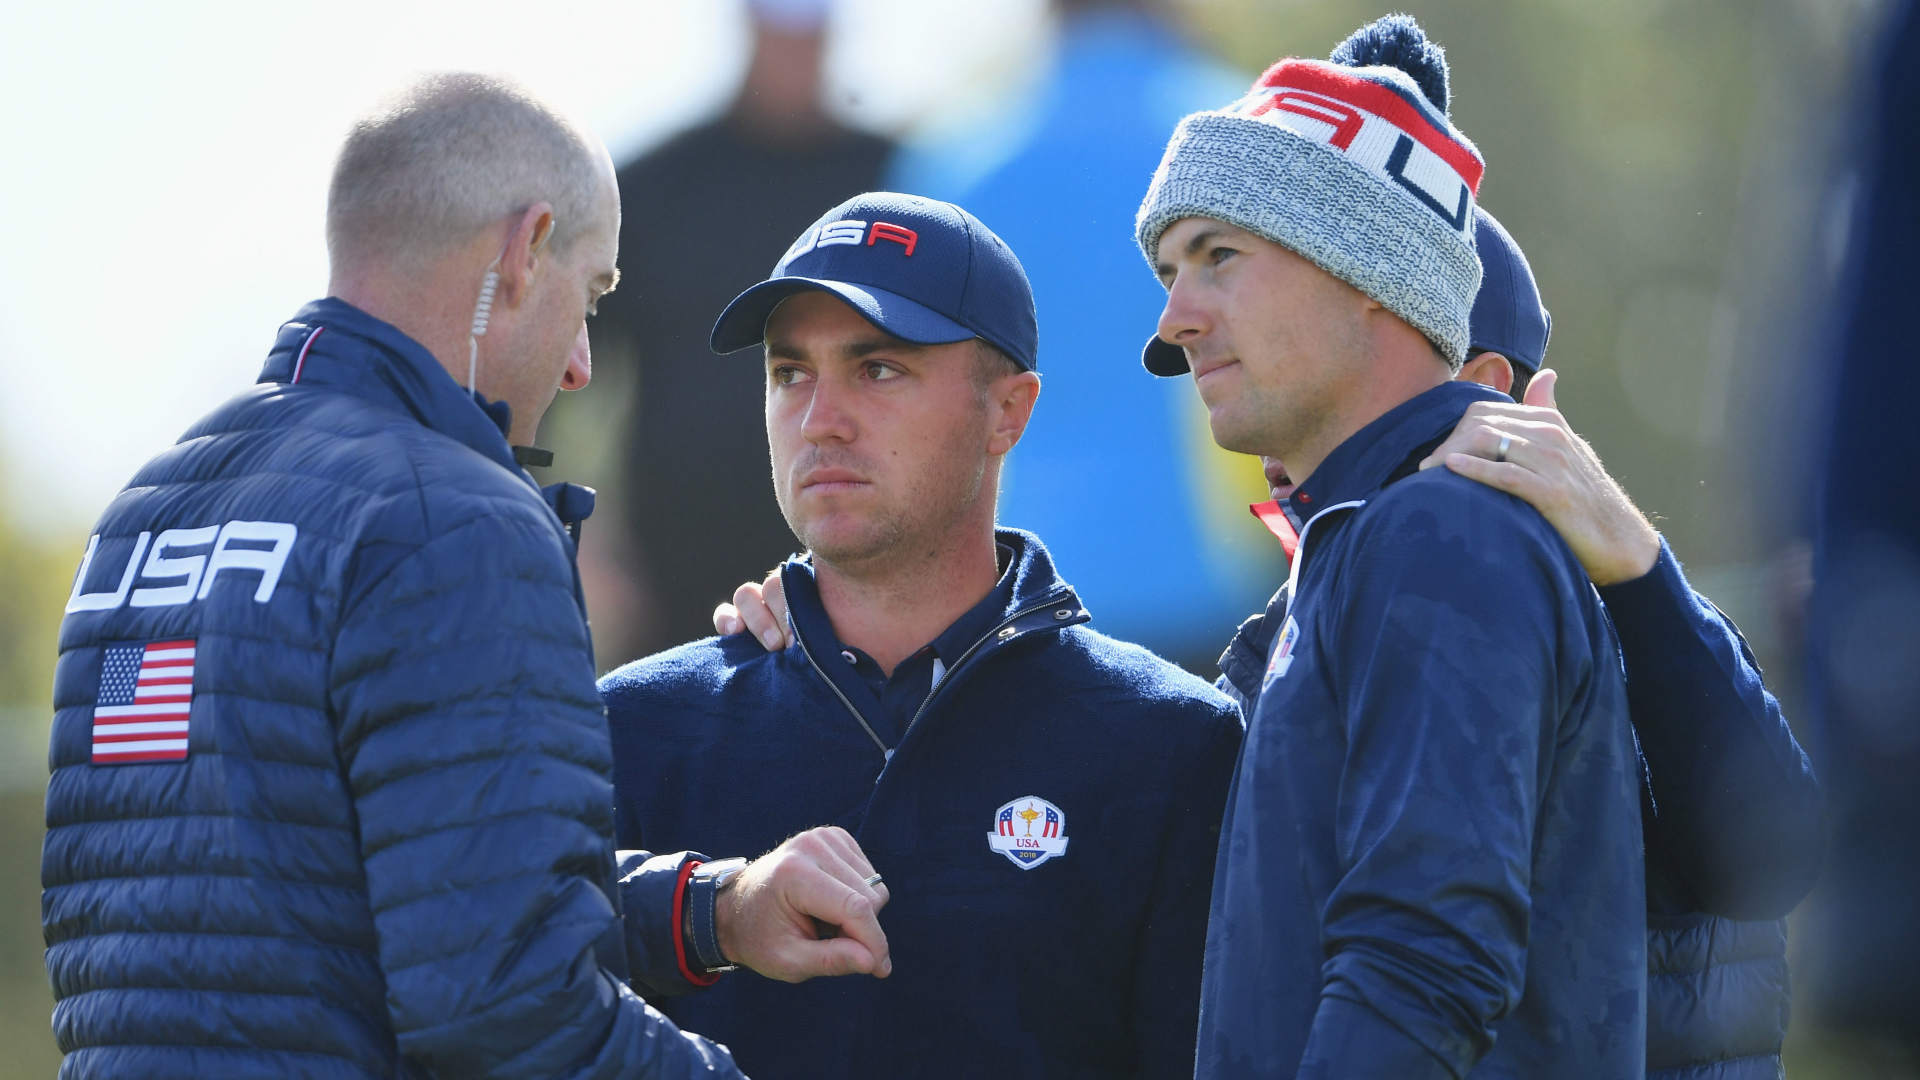 Ryder Cup 2018: Why Team USA shouldn't panic